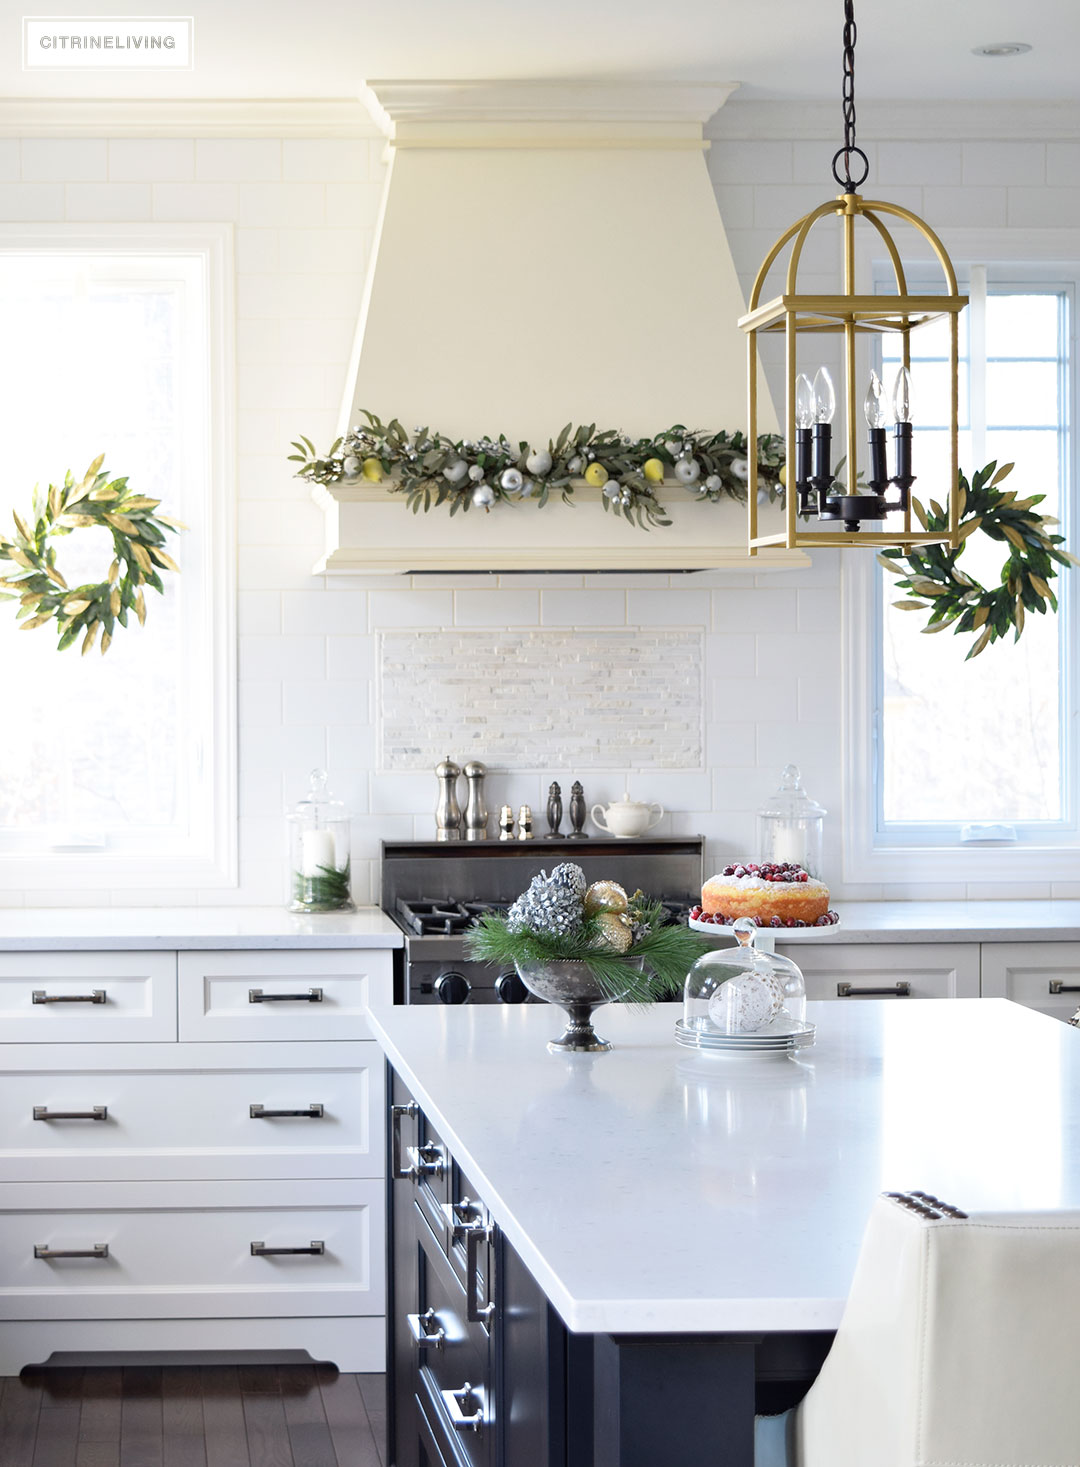 kitchen-christmas-magnolia-wreath-garland4